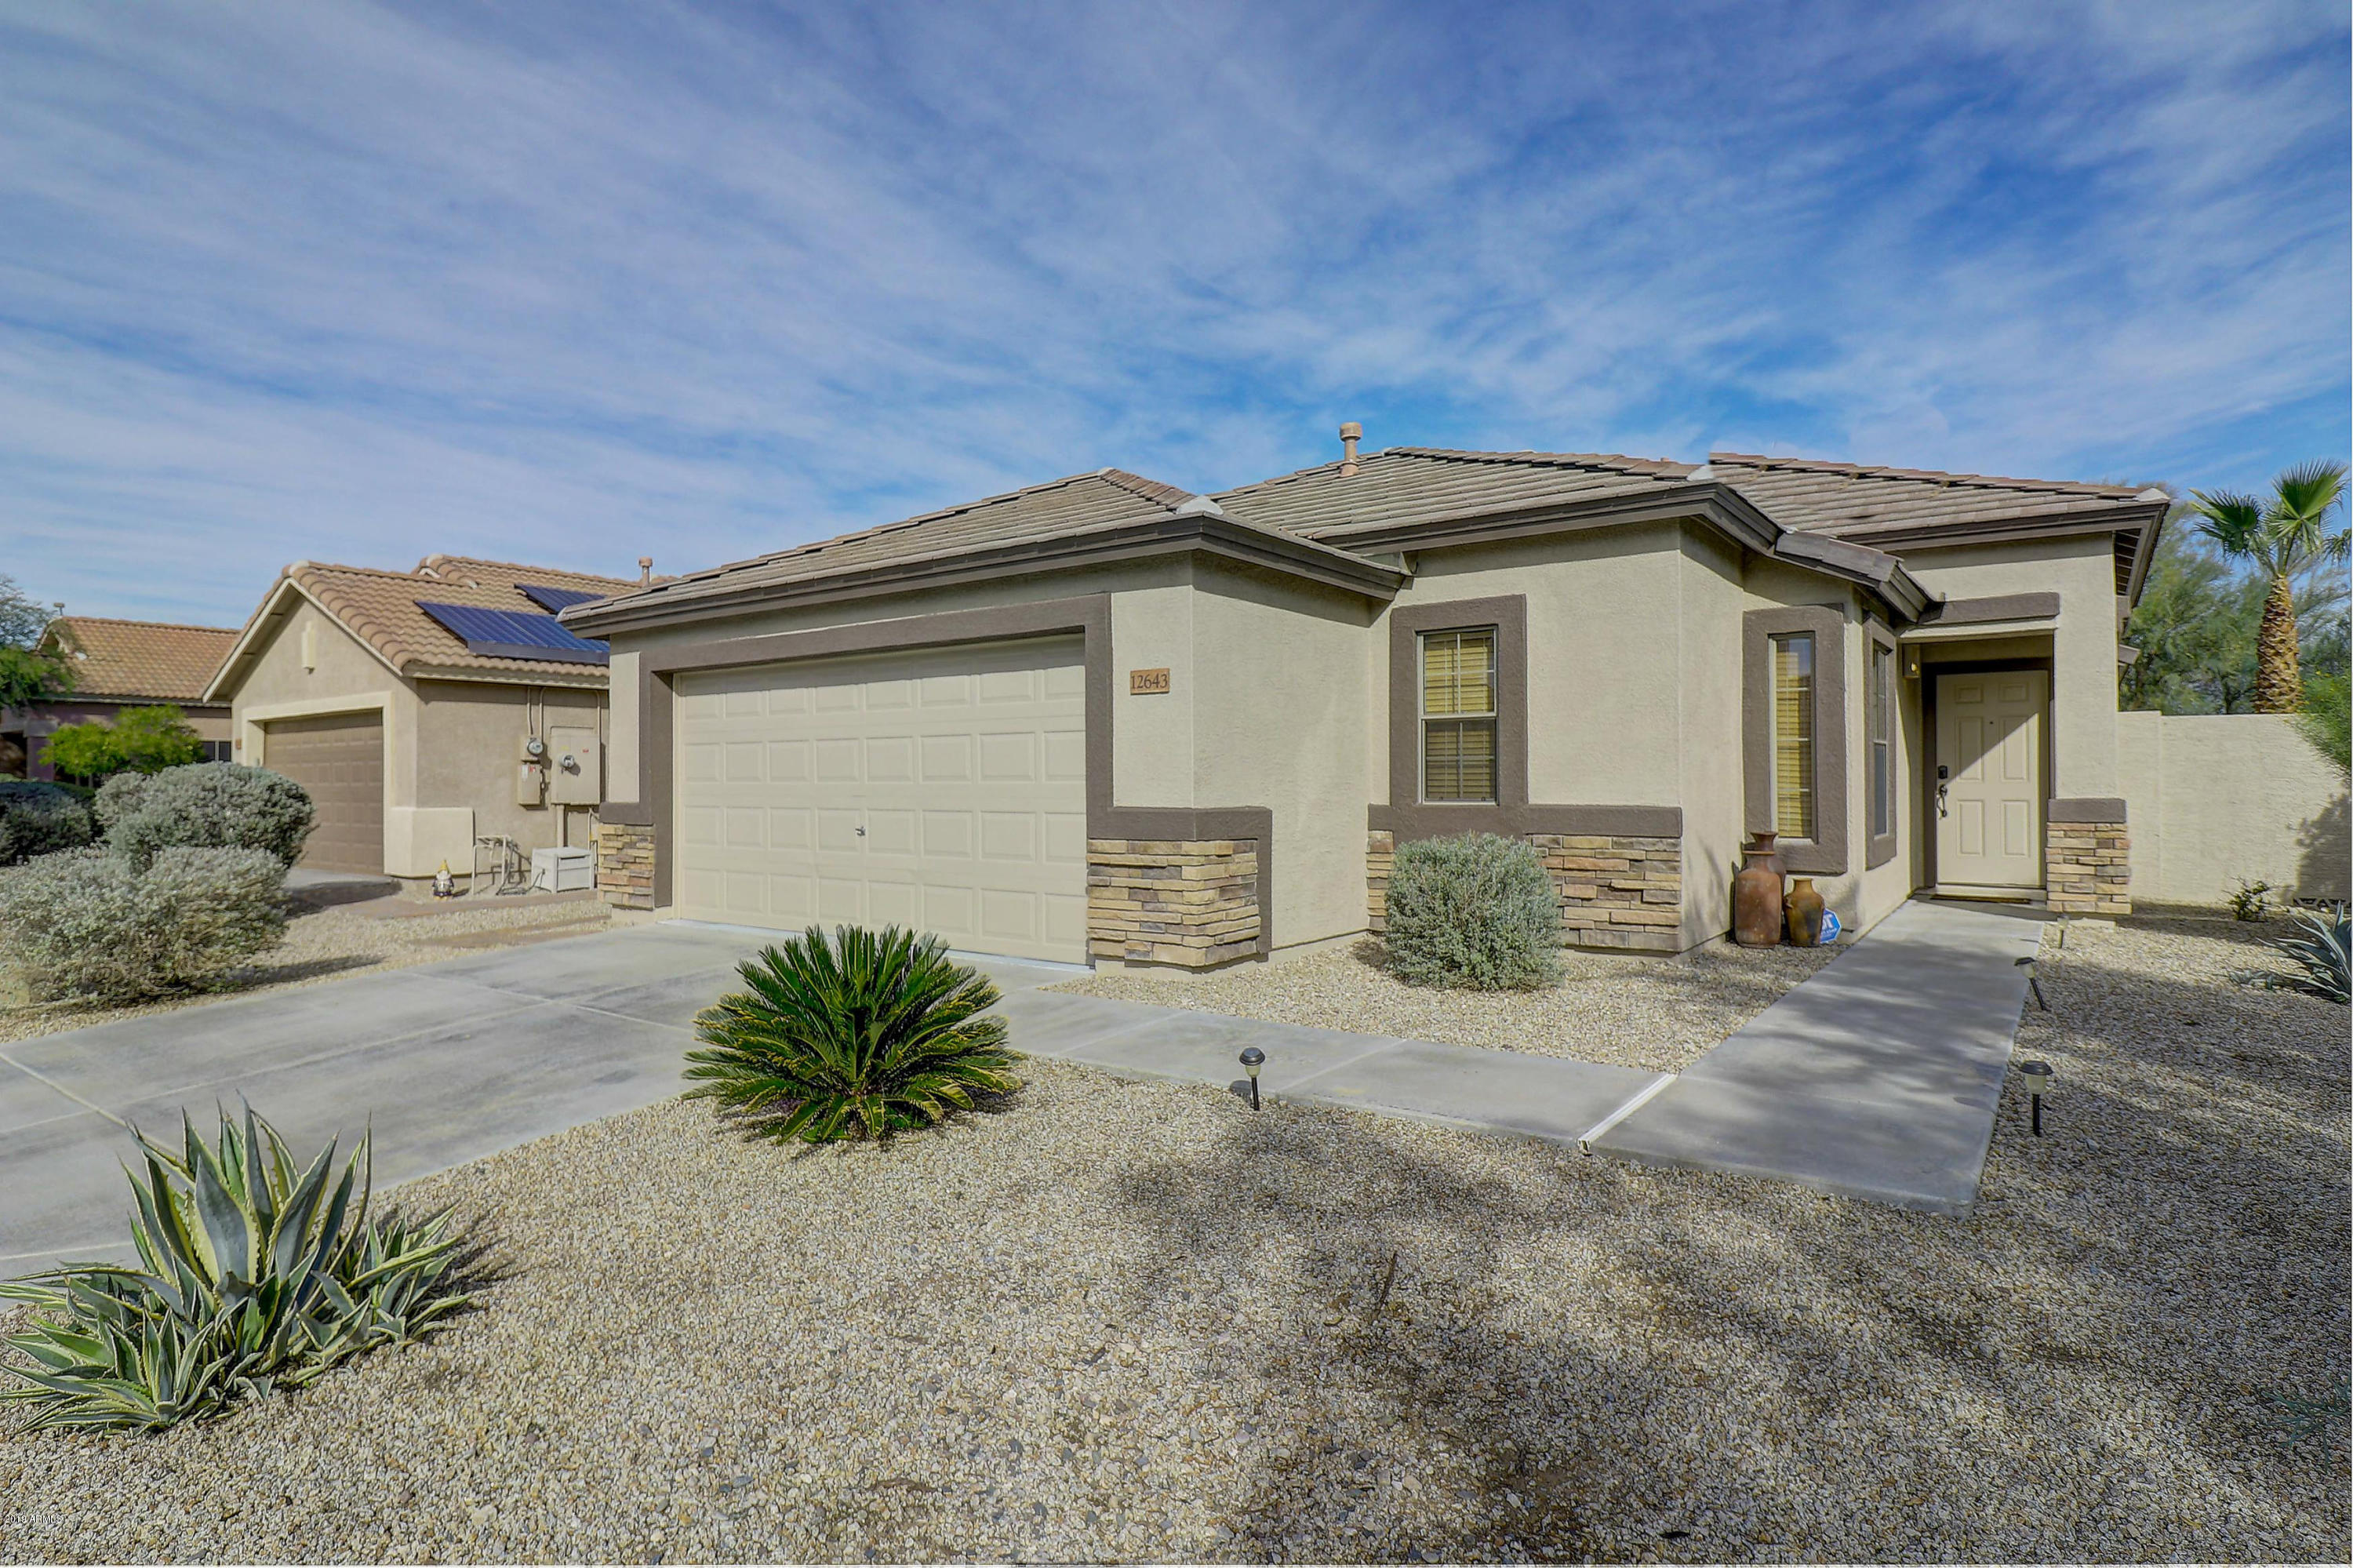 12643 S 175TH Avenue, Goodyear, AZ 85338, 3 Bedrooms Bedrooms, ,Residential Lease,For Rent,12643 S 175TH Avenue,6201275